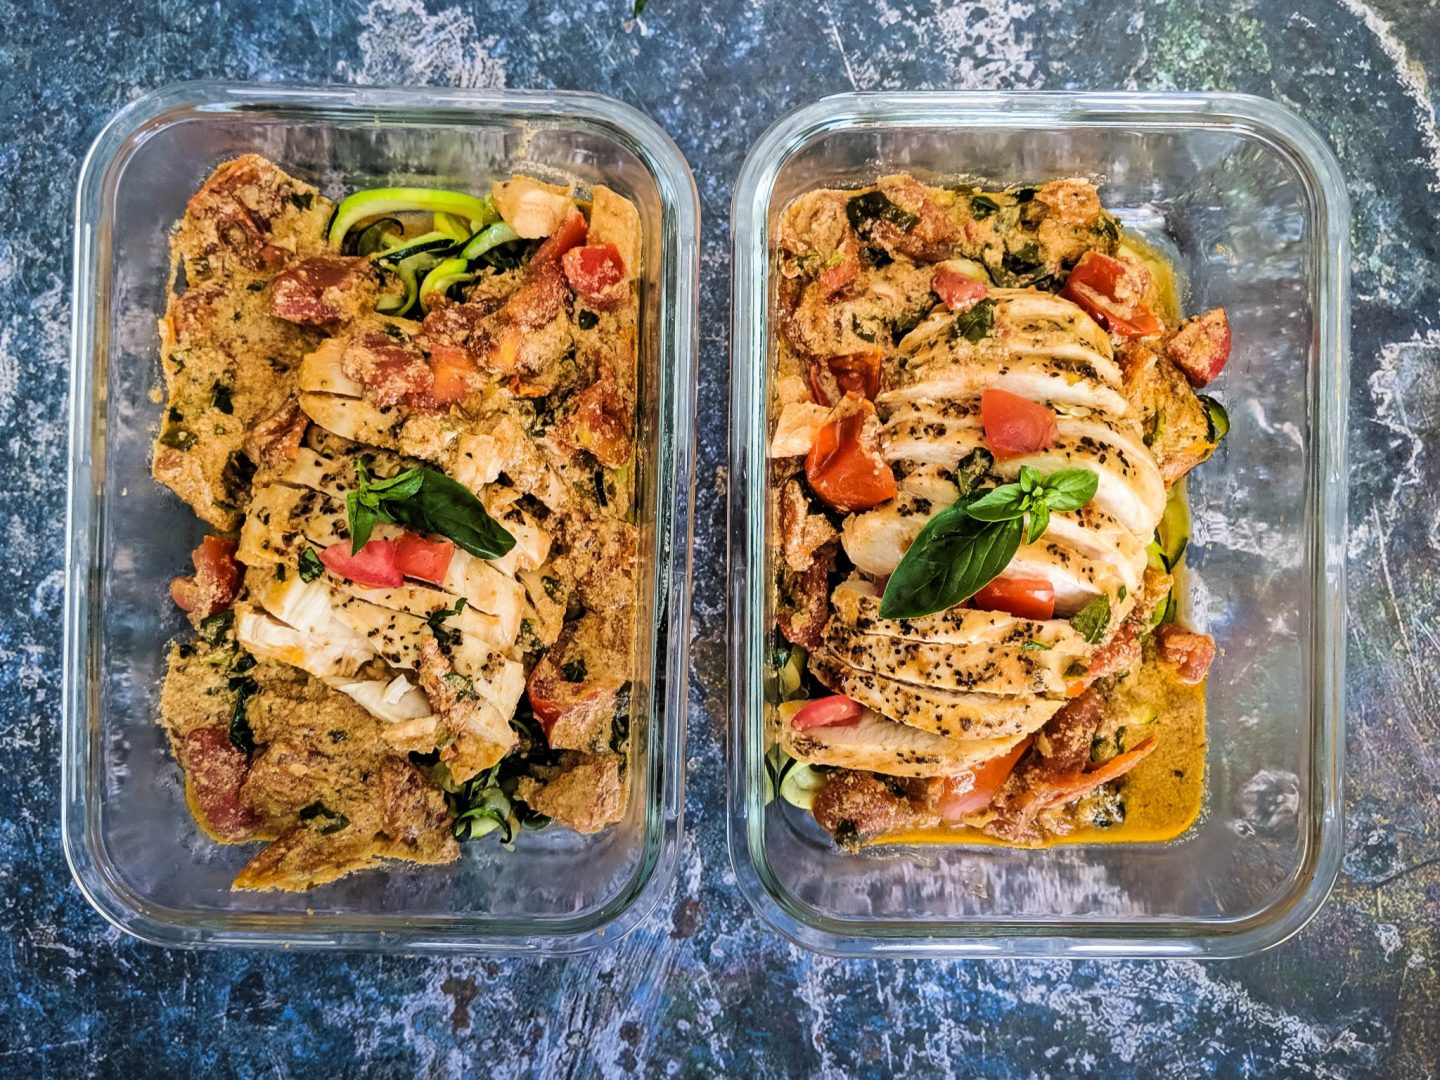 creamy tomato basil chicken in meal prep containers with zucchini noodles